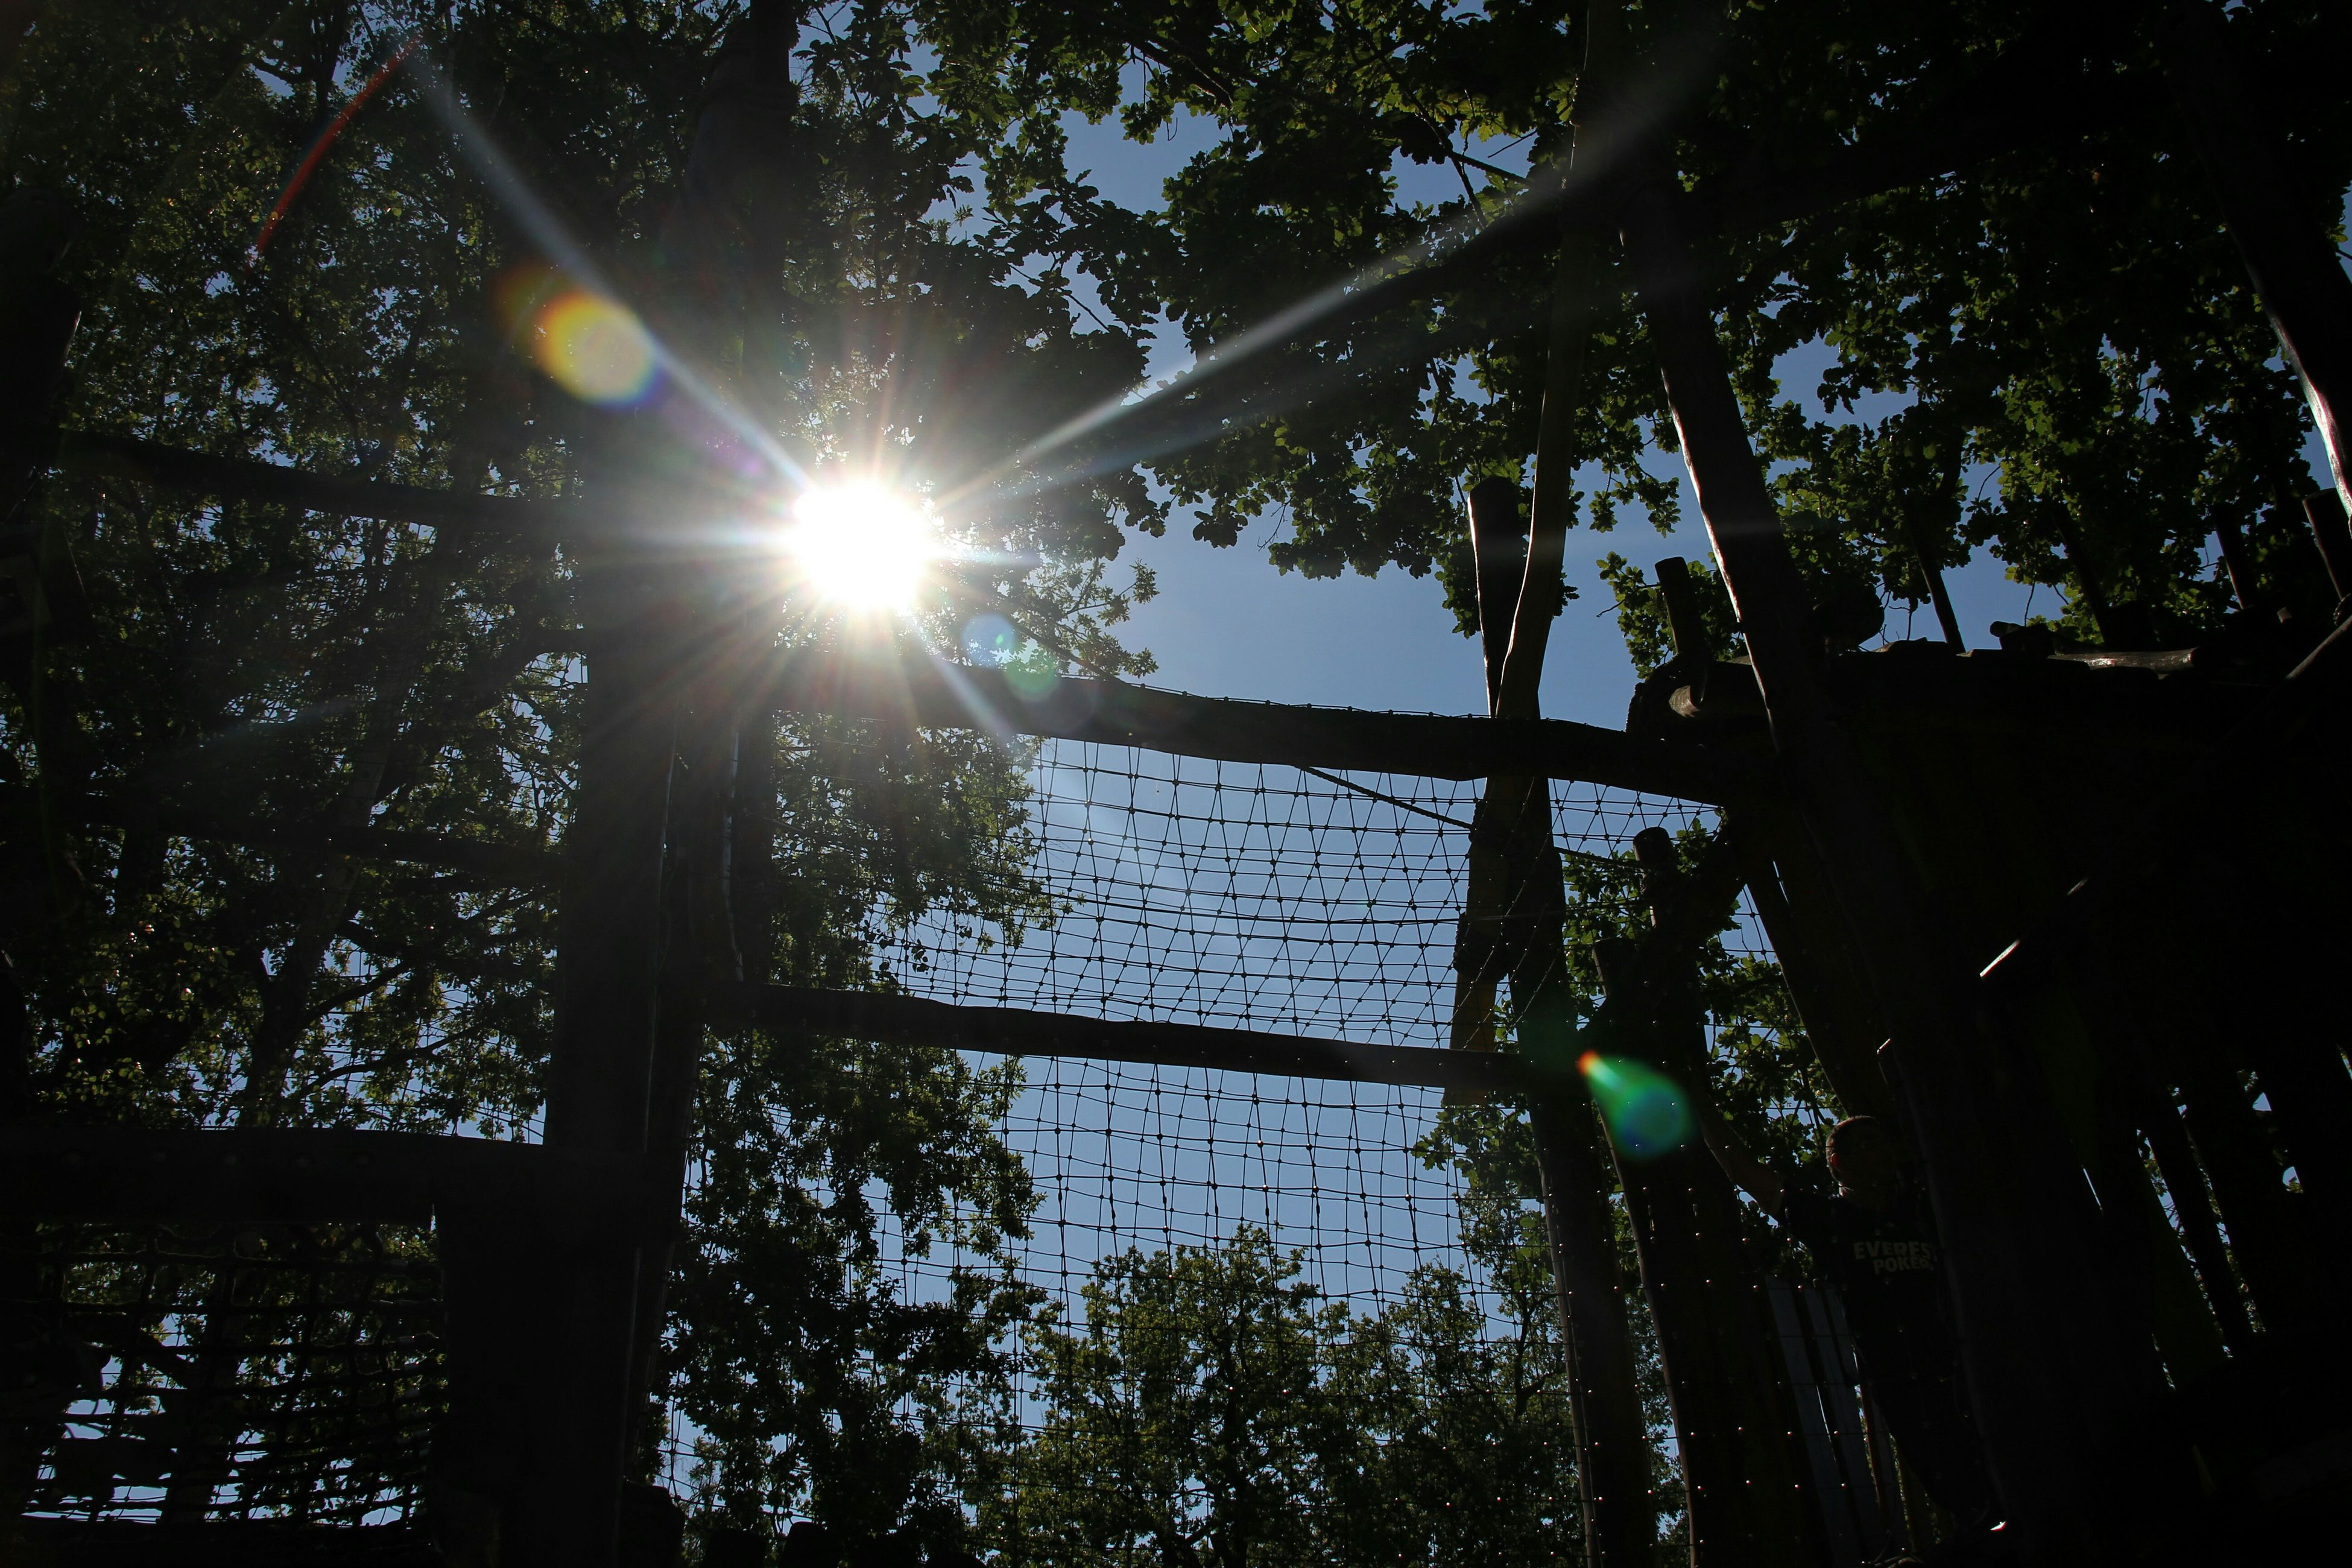 sun, tree, low angle view, sunbeam, sunlight, lens flare, branch, growth, silhouette, nature, tranquility, sky, fence, street light, back lit, outdoors, sunny, tree trunk, clear sky, no people